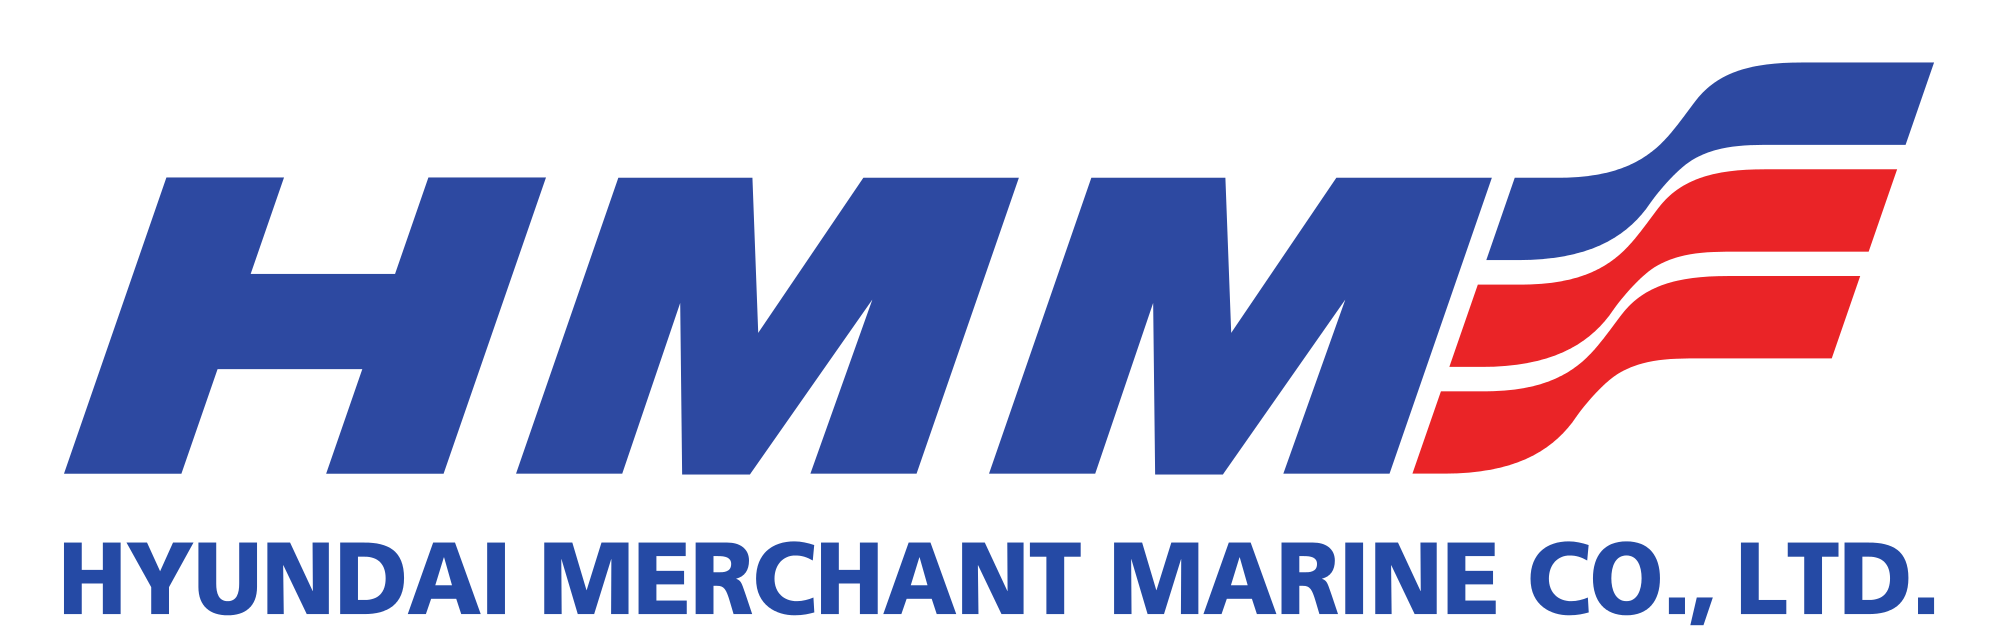 hyuundai merchant marine co ltd